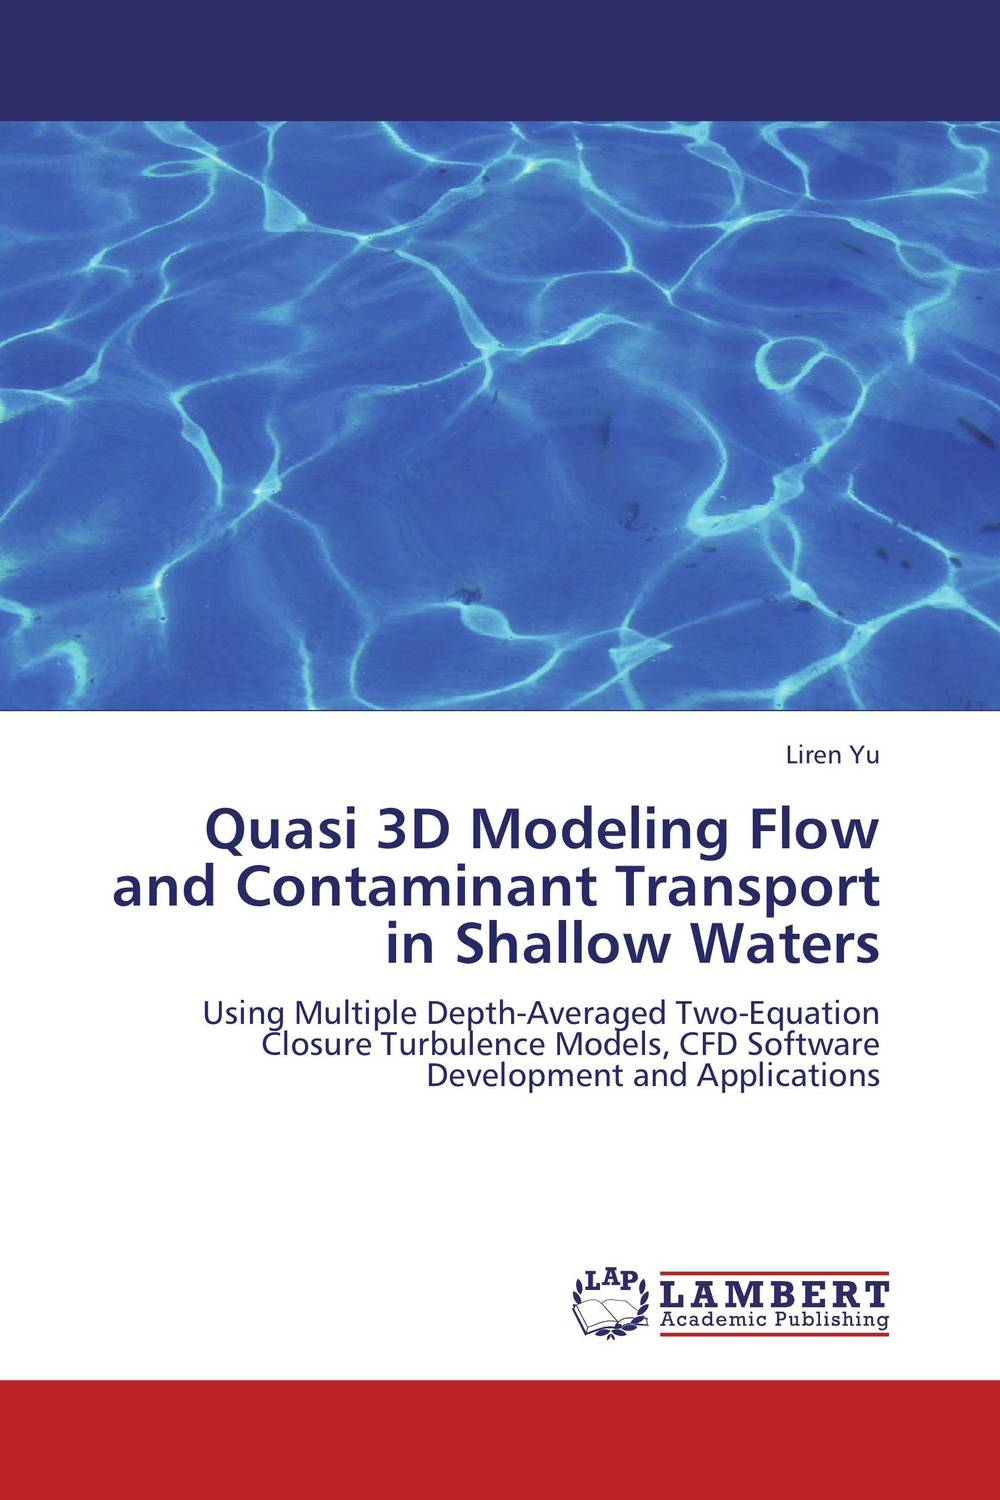 Quasi 3D Modeling Flow and Contaminant Transport in Shallow Waters kapil sharma and r k garg software reliability modeling and selection